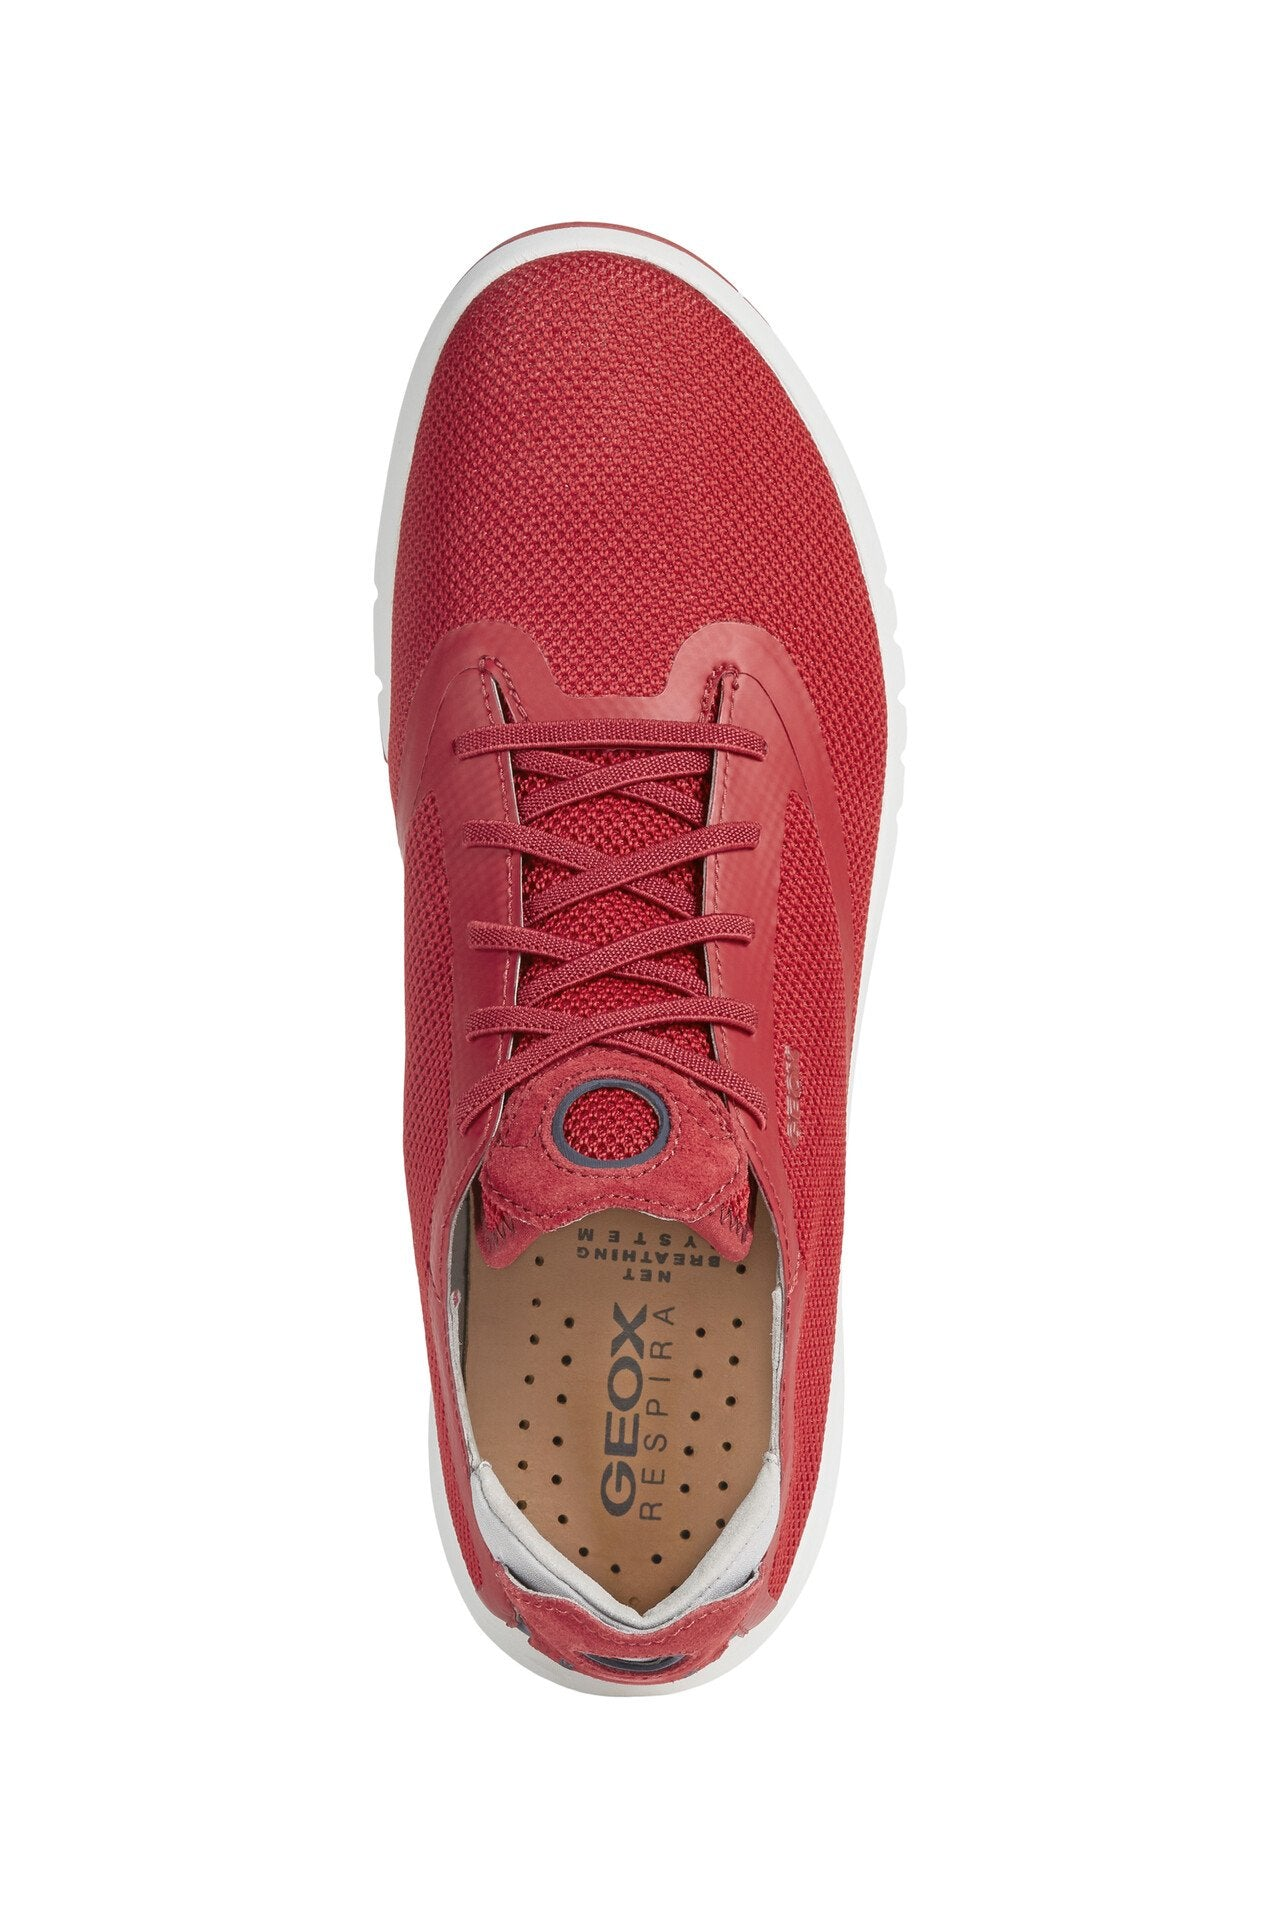 Geox Mens Red U Aerantis Trainers U027FD0006KC7000 | Vilbury London